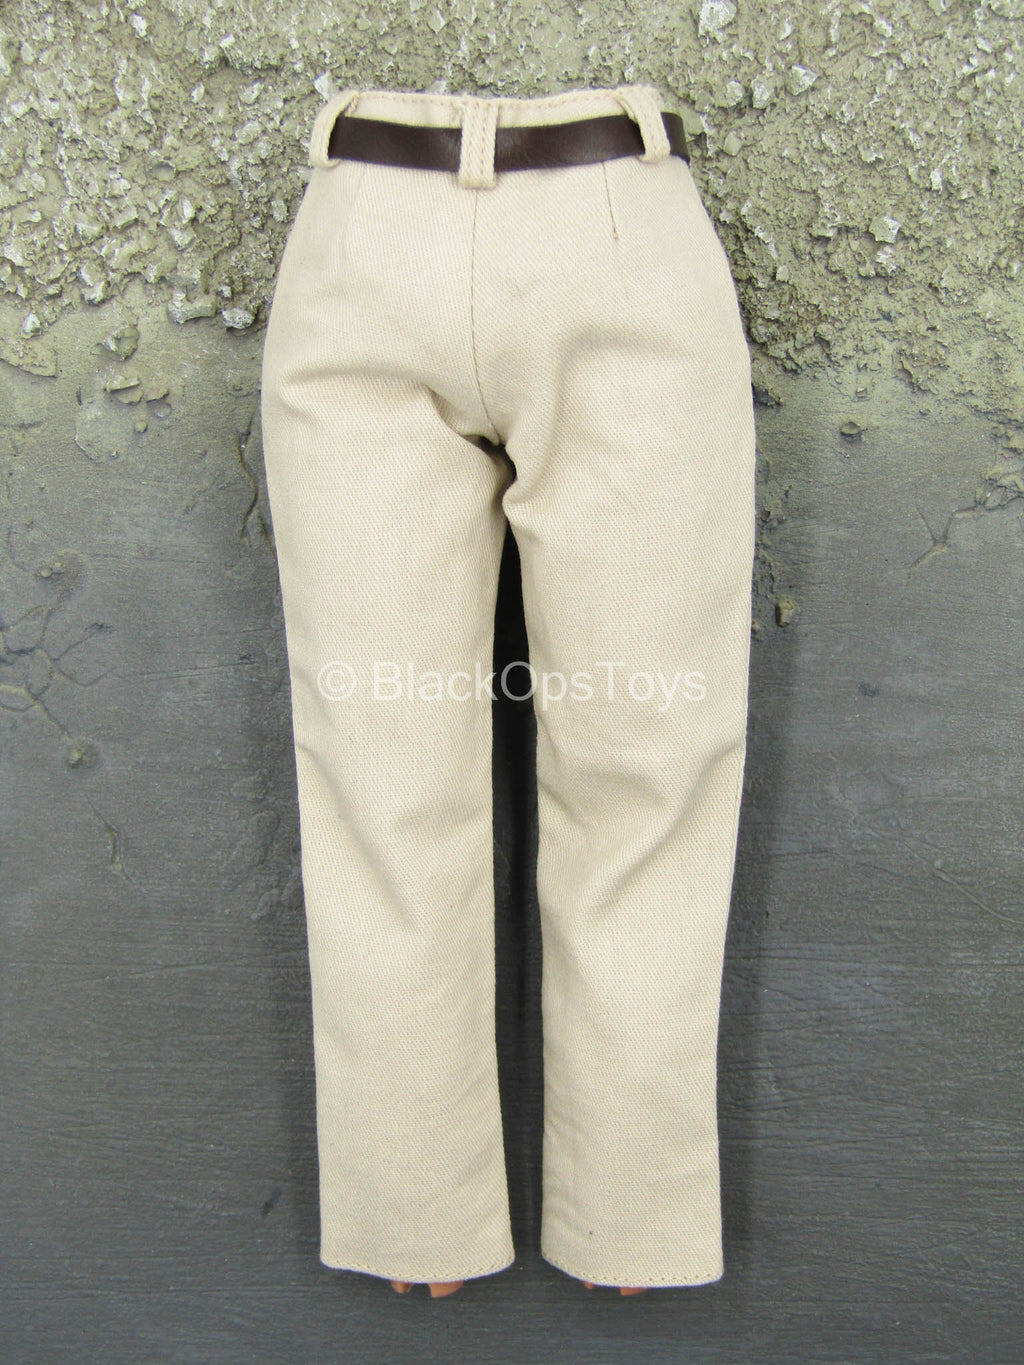 Men's Jacket Suit - Pants w/Leather-Like Belt